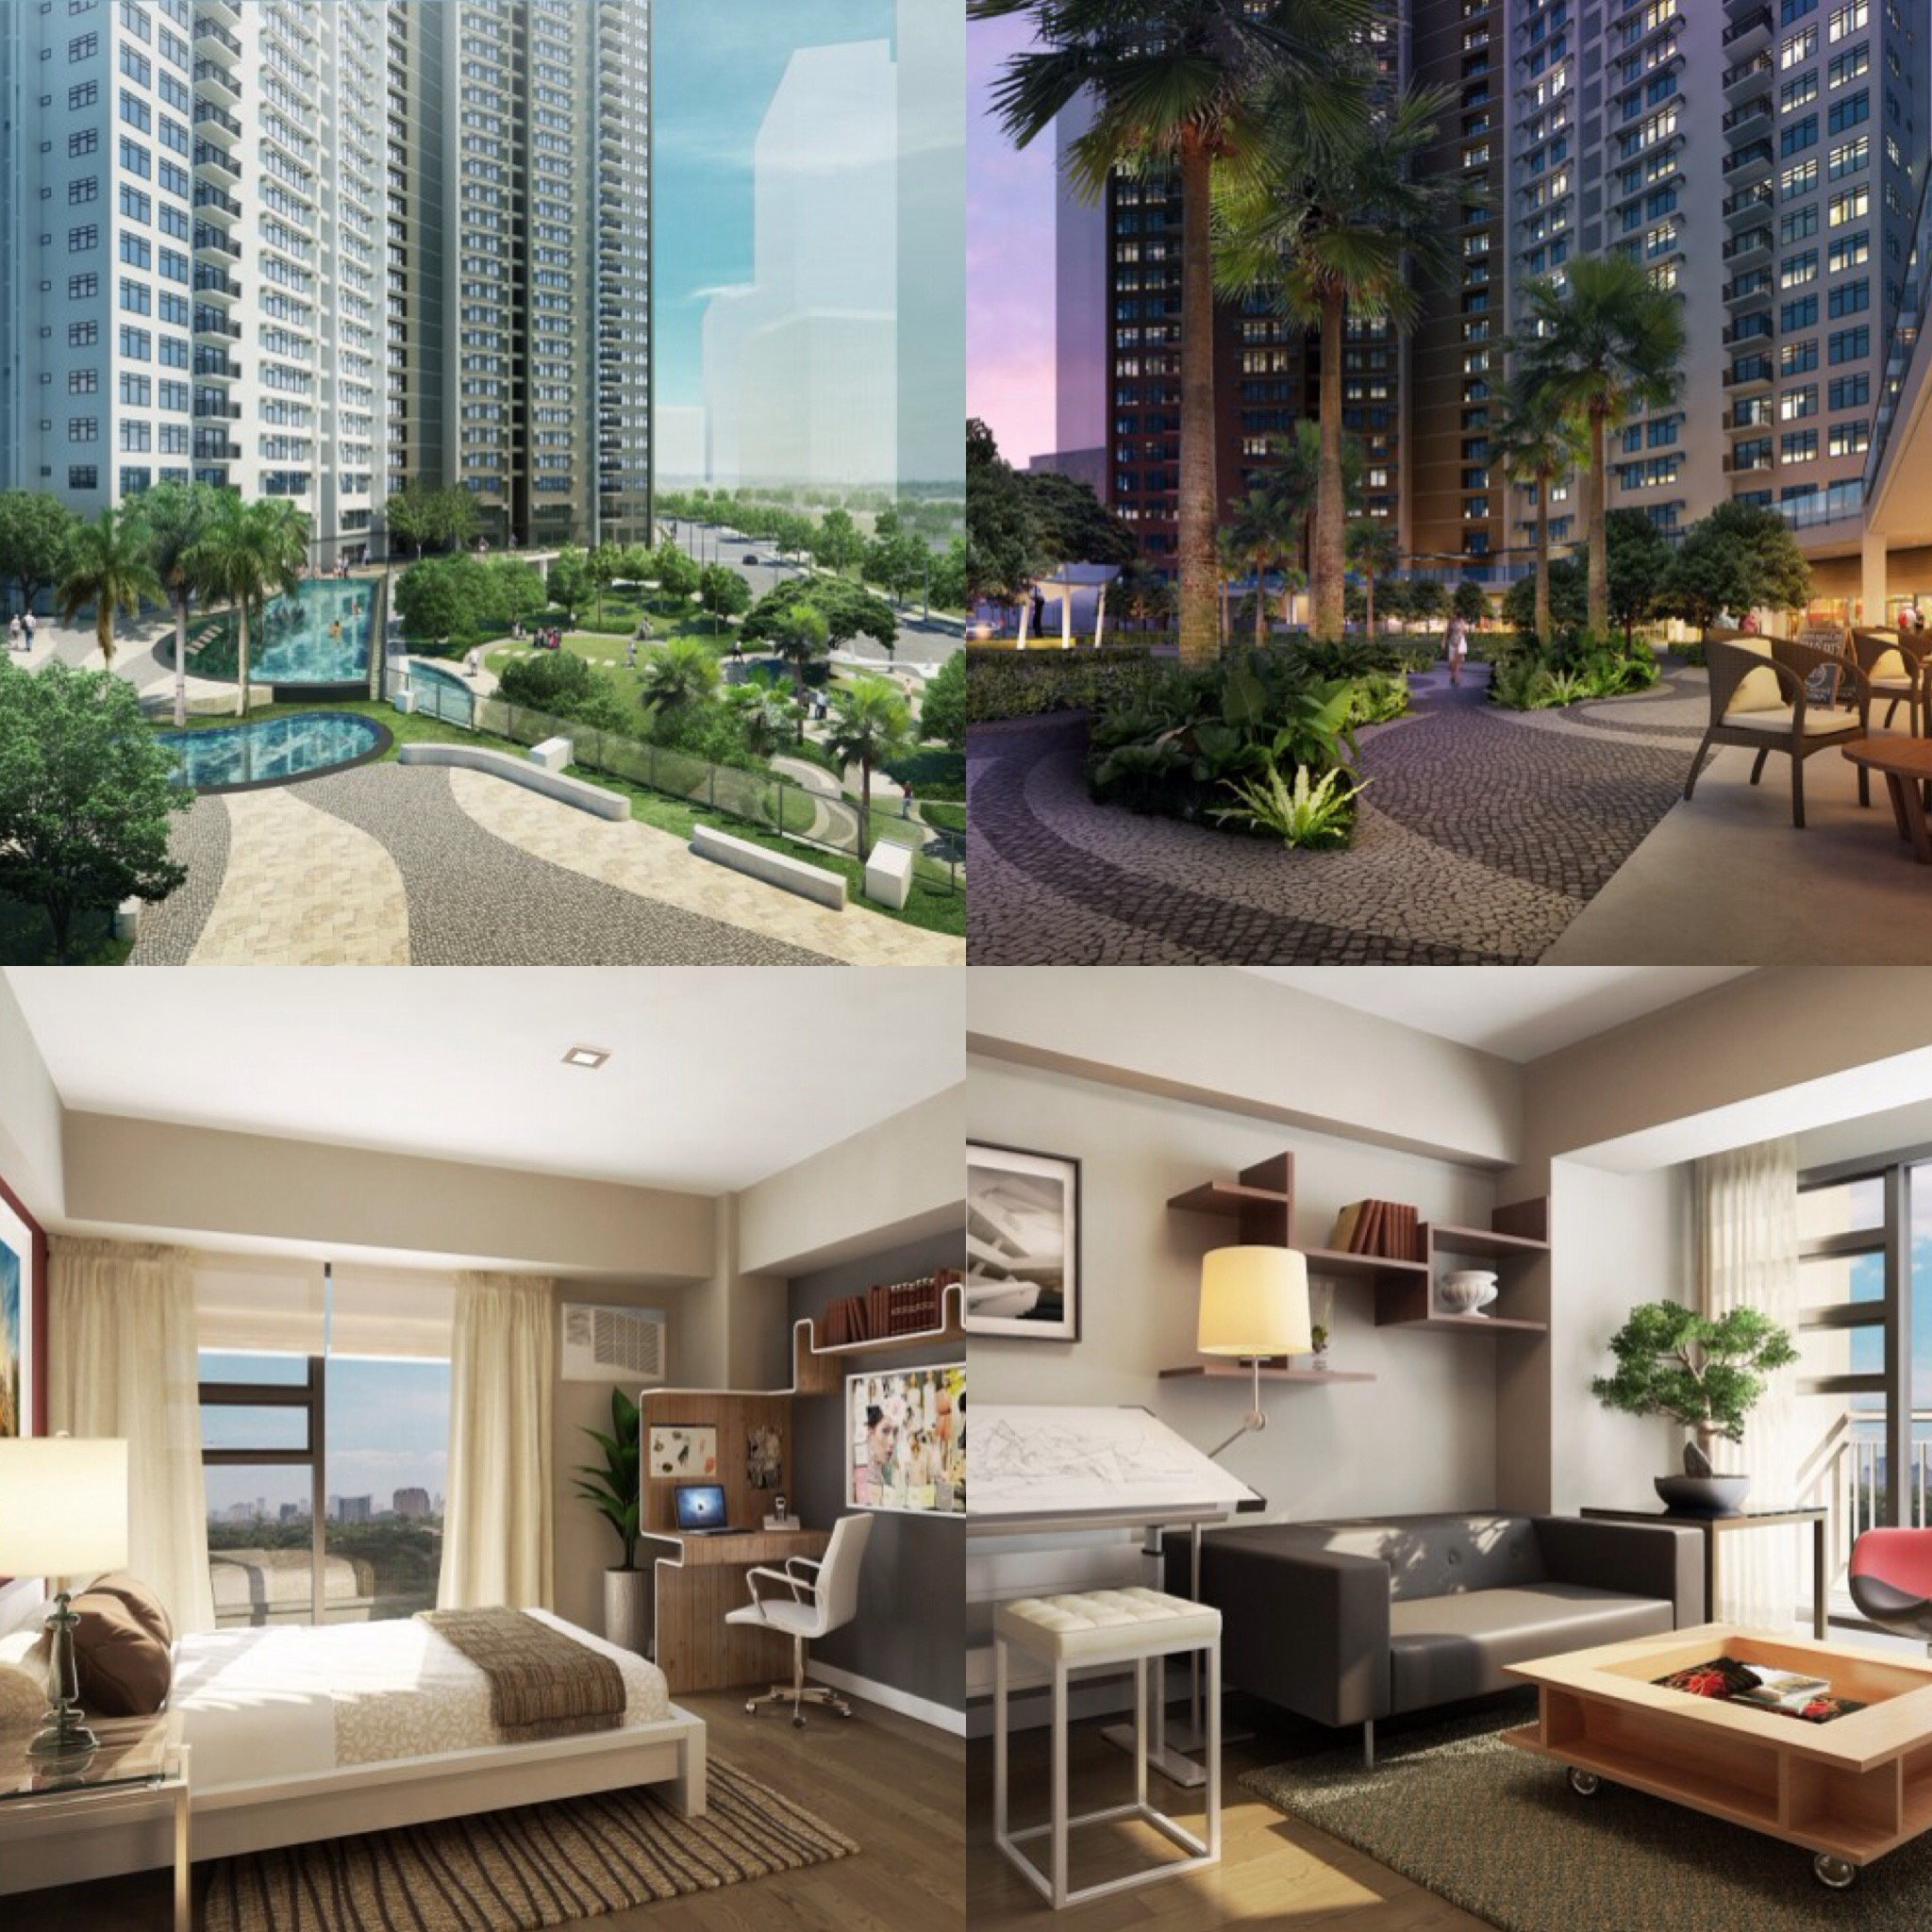 alveo high park condo for sale 09176747343 rico navarro